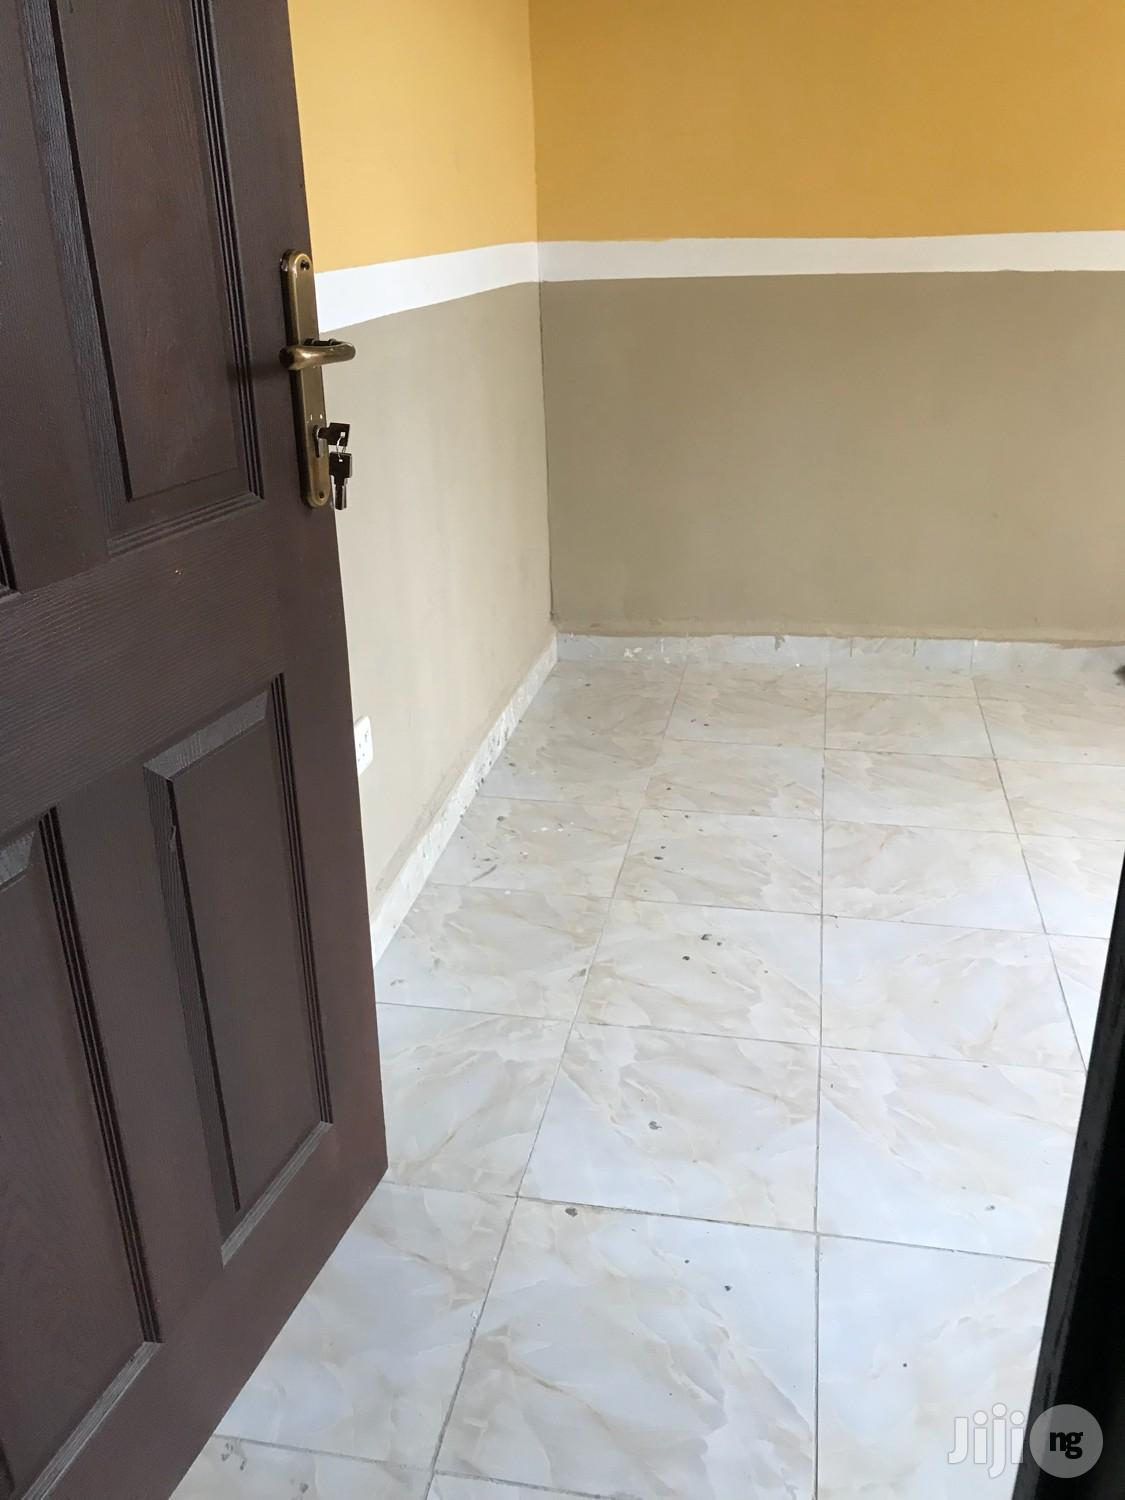 Executive Mini Flat 1bedroom Apartment at Ajah for Rent | Houses & Apartments For Rent for sale in Abraham Adesanya, Surulere, Nigeria